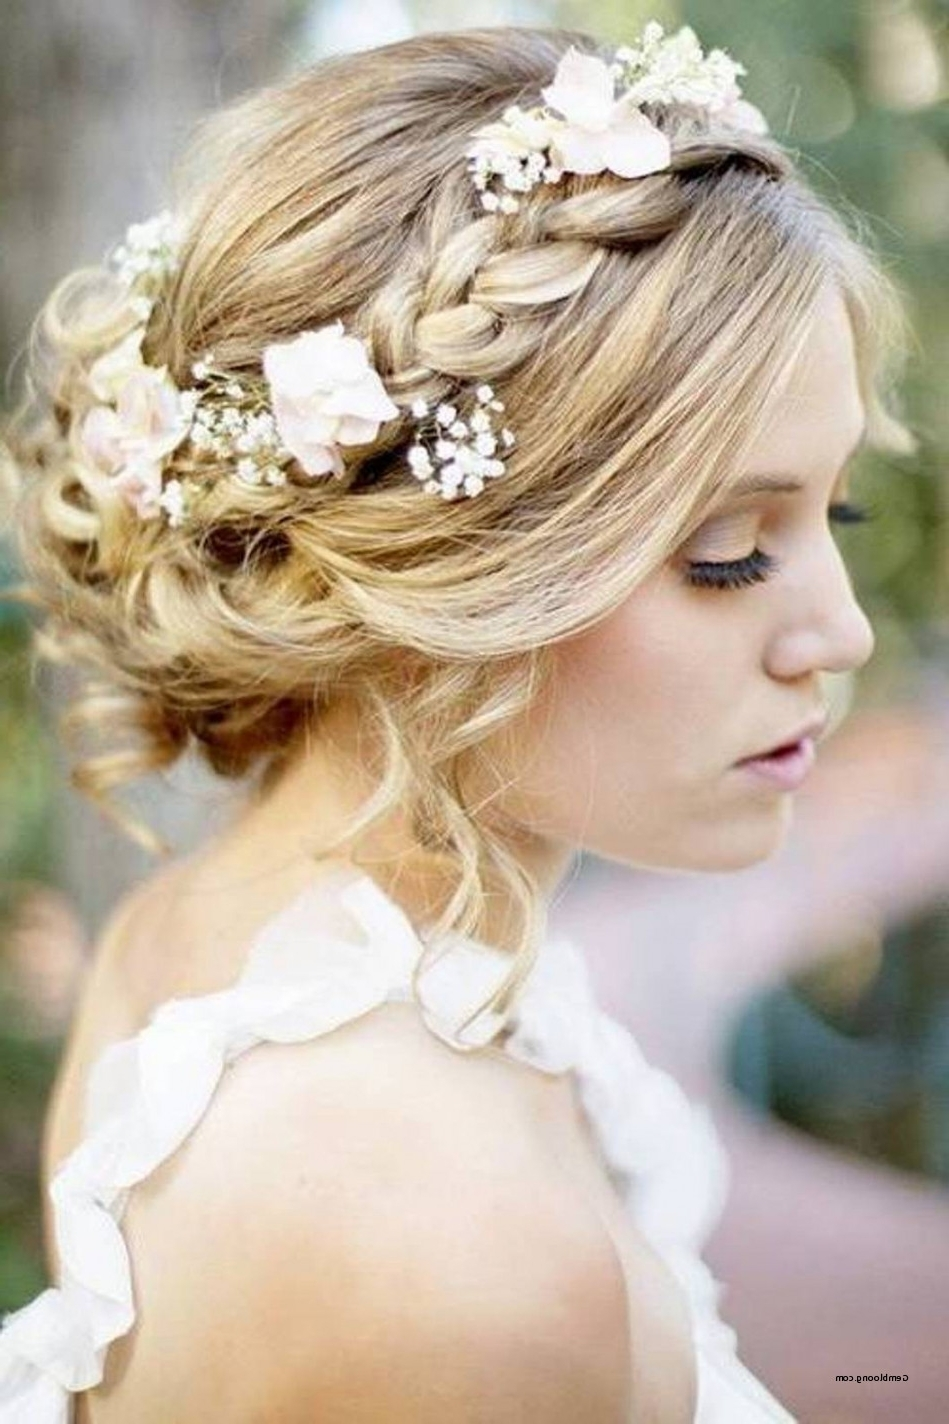 Short Hair Wedding Styles With Tiara Lovely Wedding Hairstyles For Intended For Recent Wedding Hairstyles With Tiara And Veil (View 14 of 15)